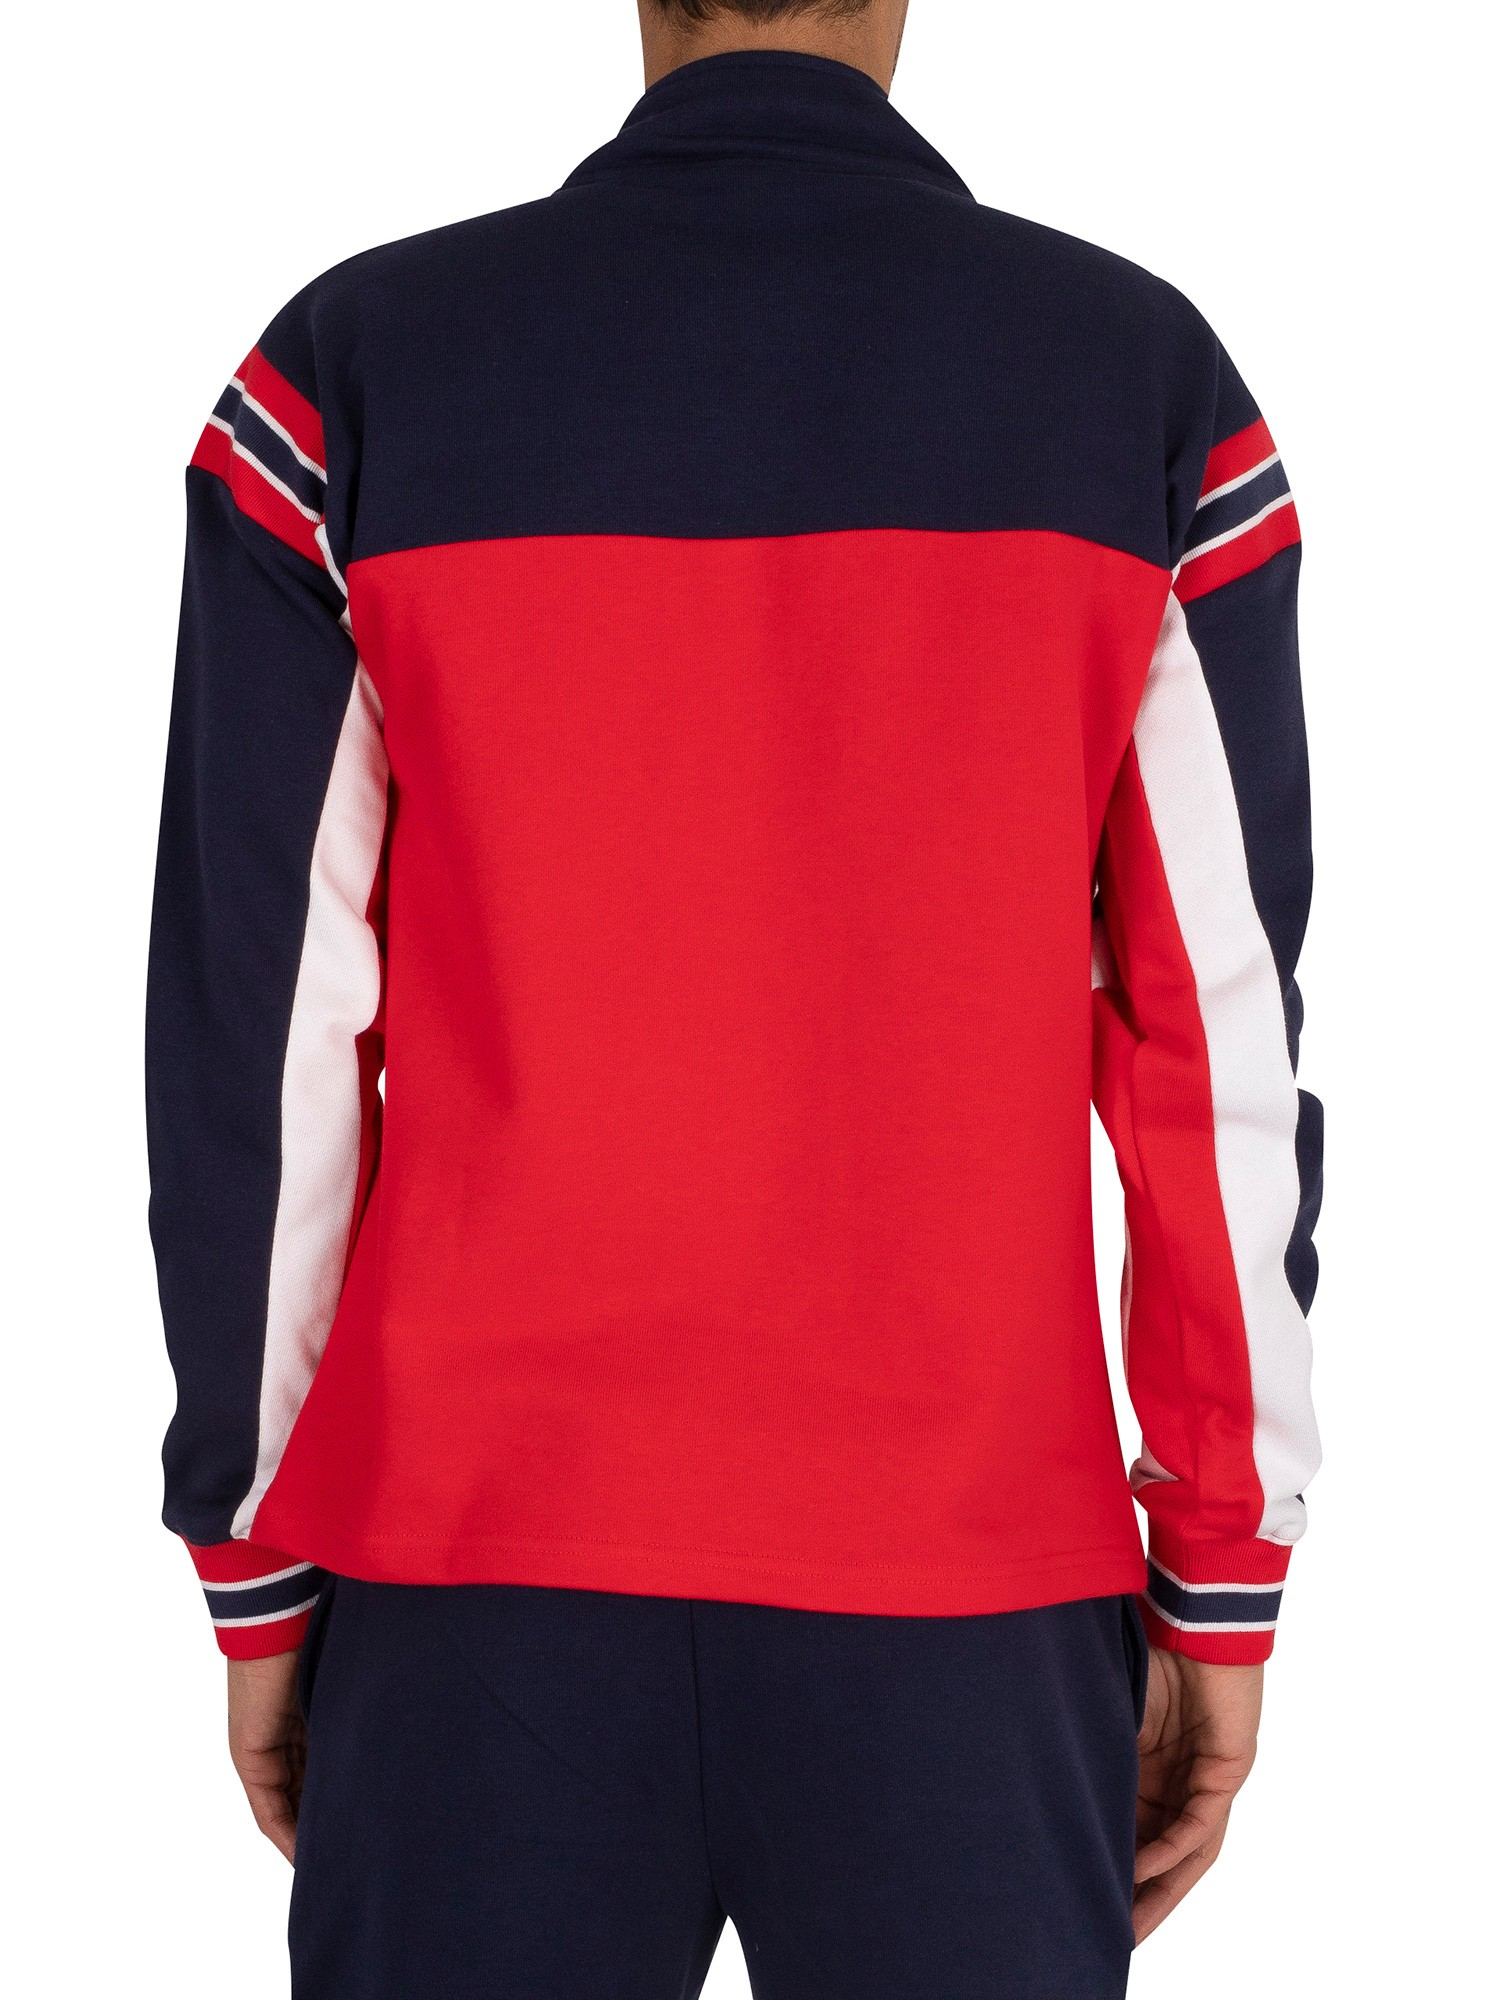 Fila Haakon Track Jacket - Red/Peacoat/White